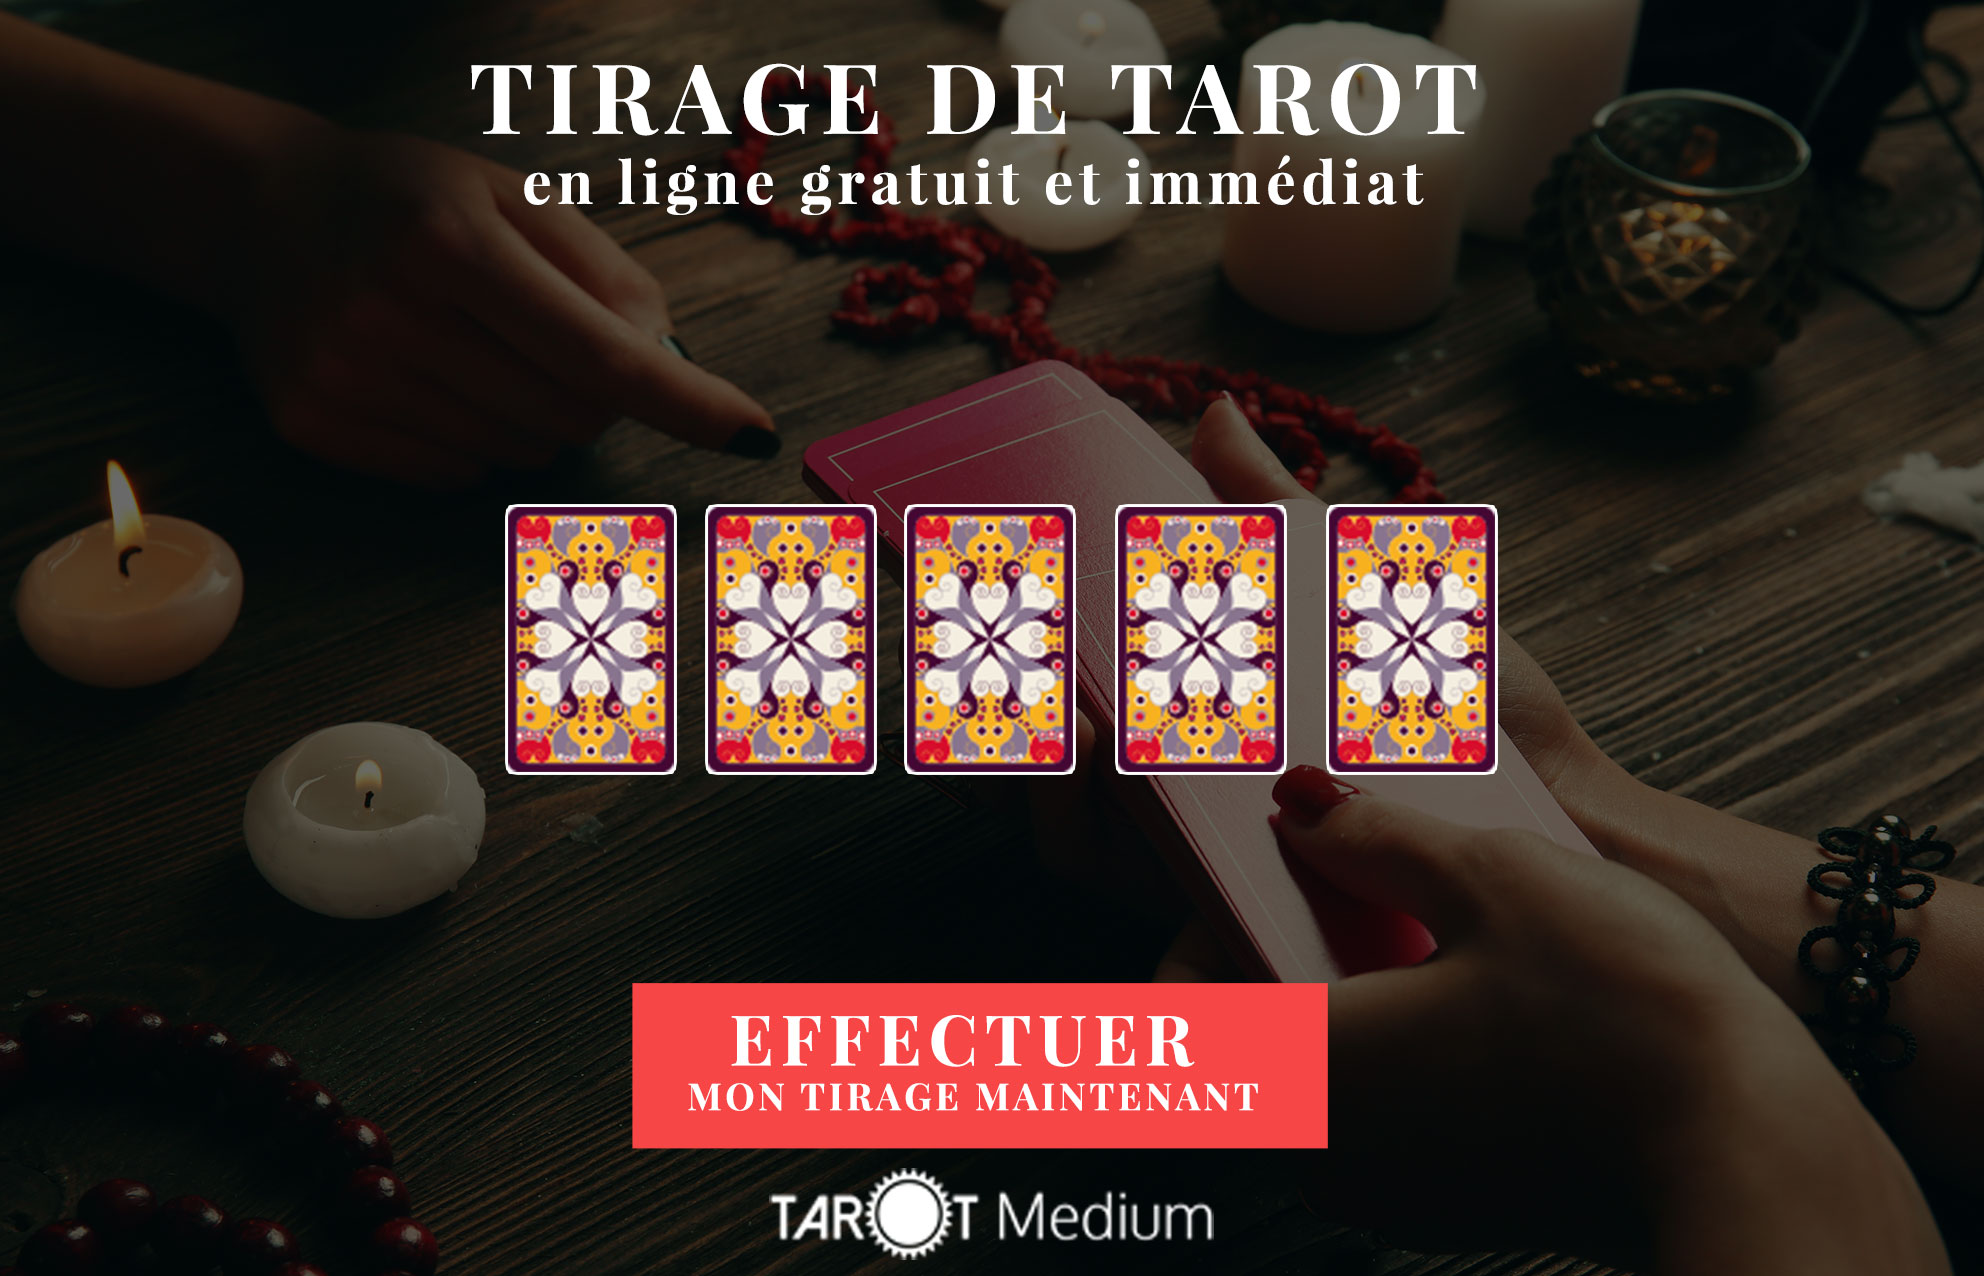 Tarot medium